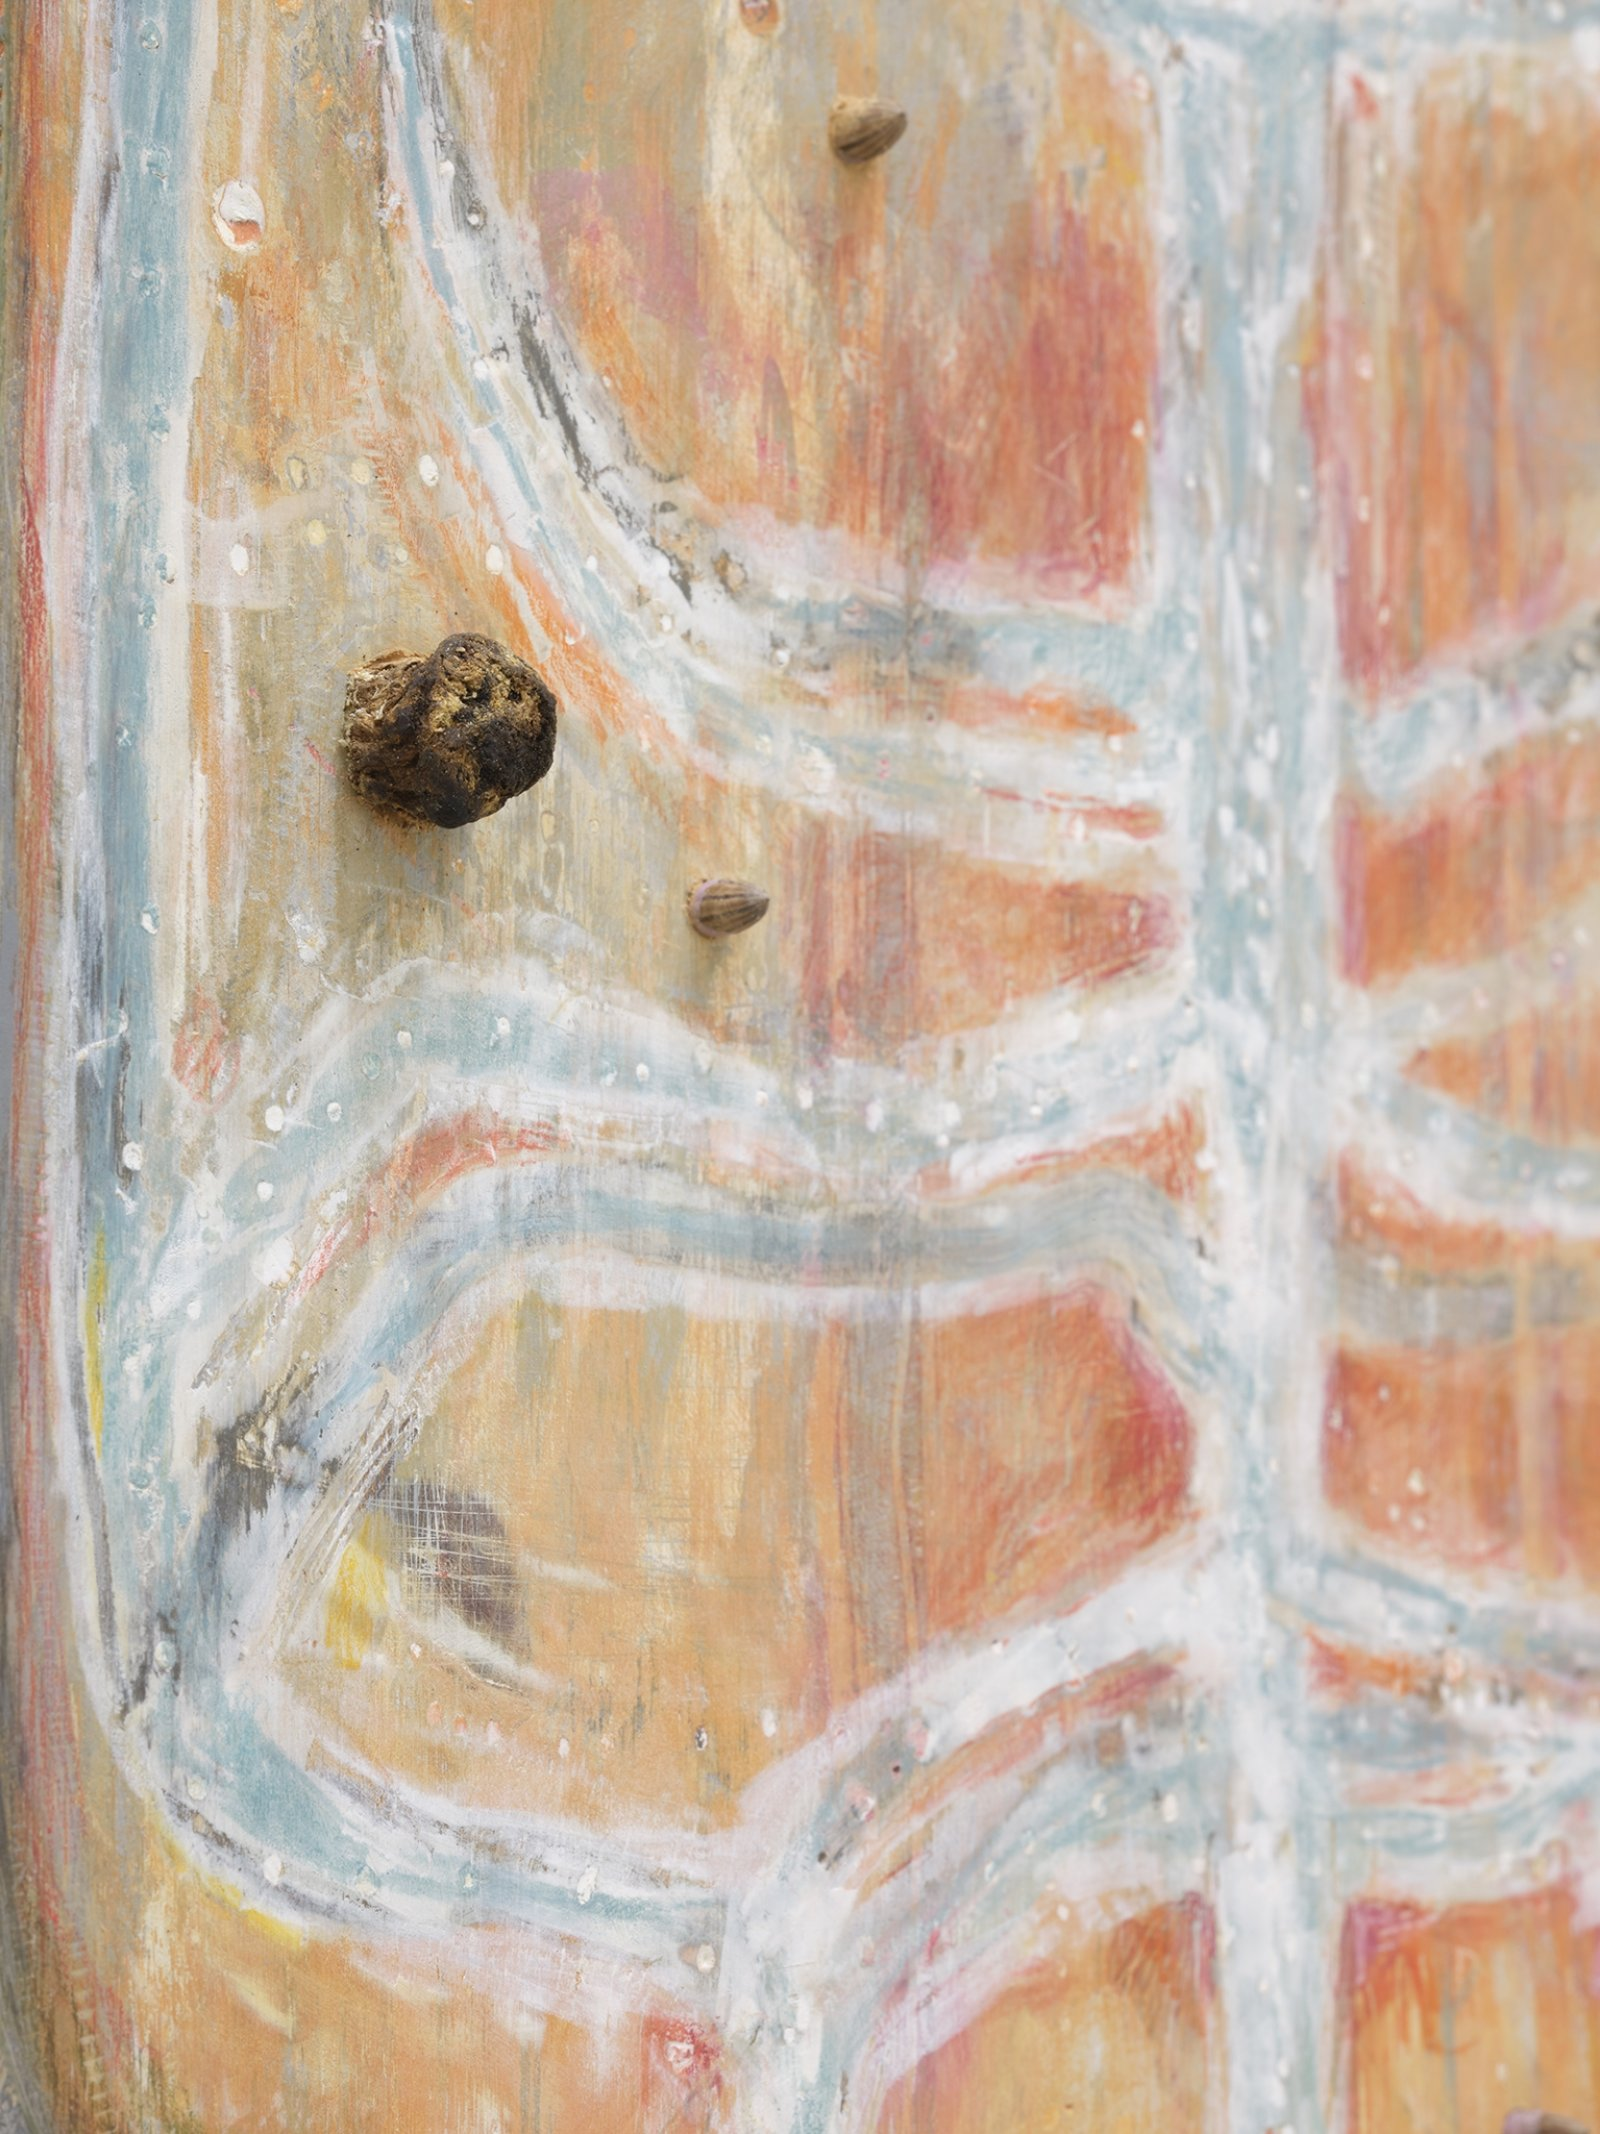 Ashes Withyman, One into Saturn, the other Jupiter (detail), 2020, found wood, paint, wood filler, coloured pencil, Russian olive pits, osha root, 12 x 11 in. (31 x 28 cm) by Ashes Withyman